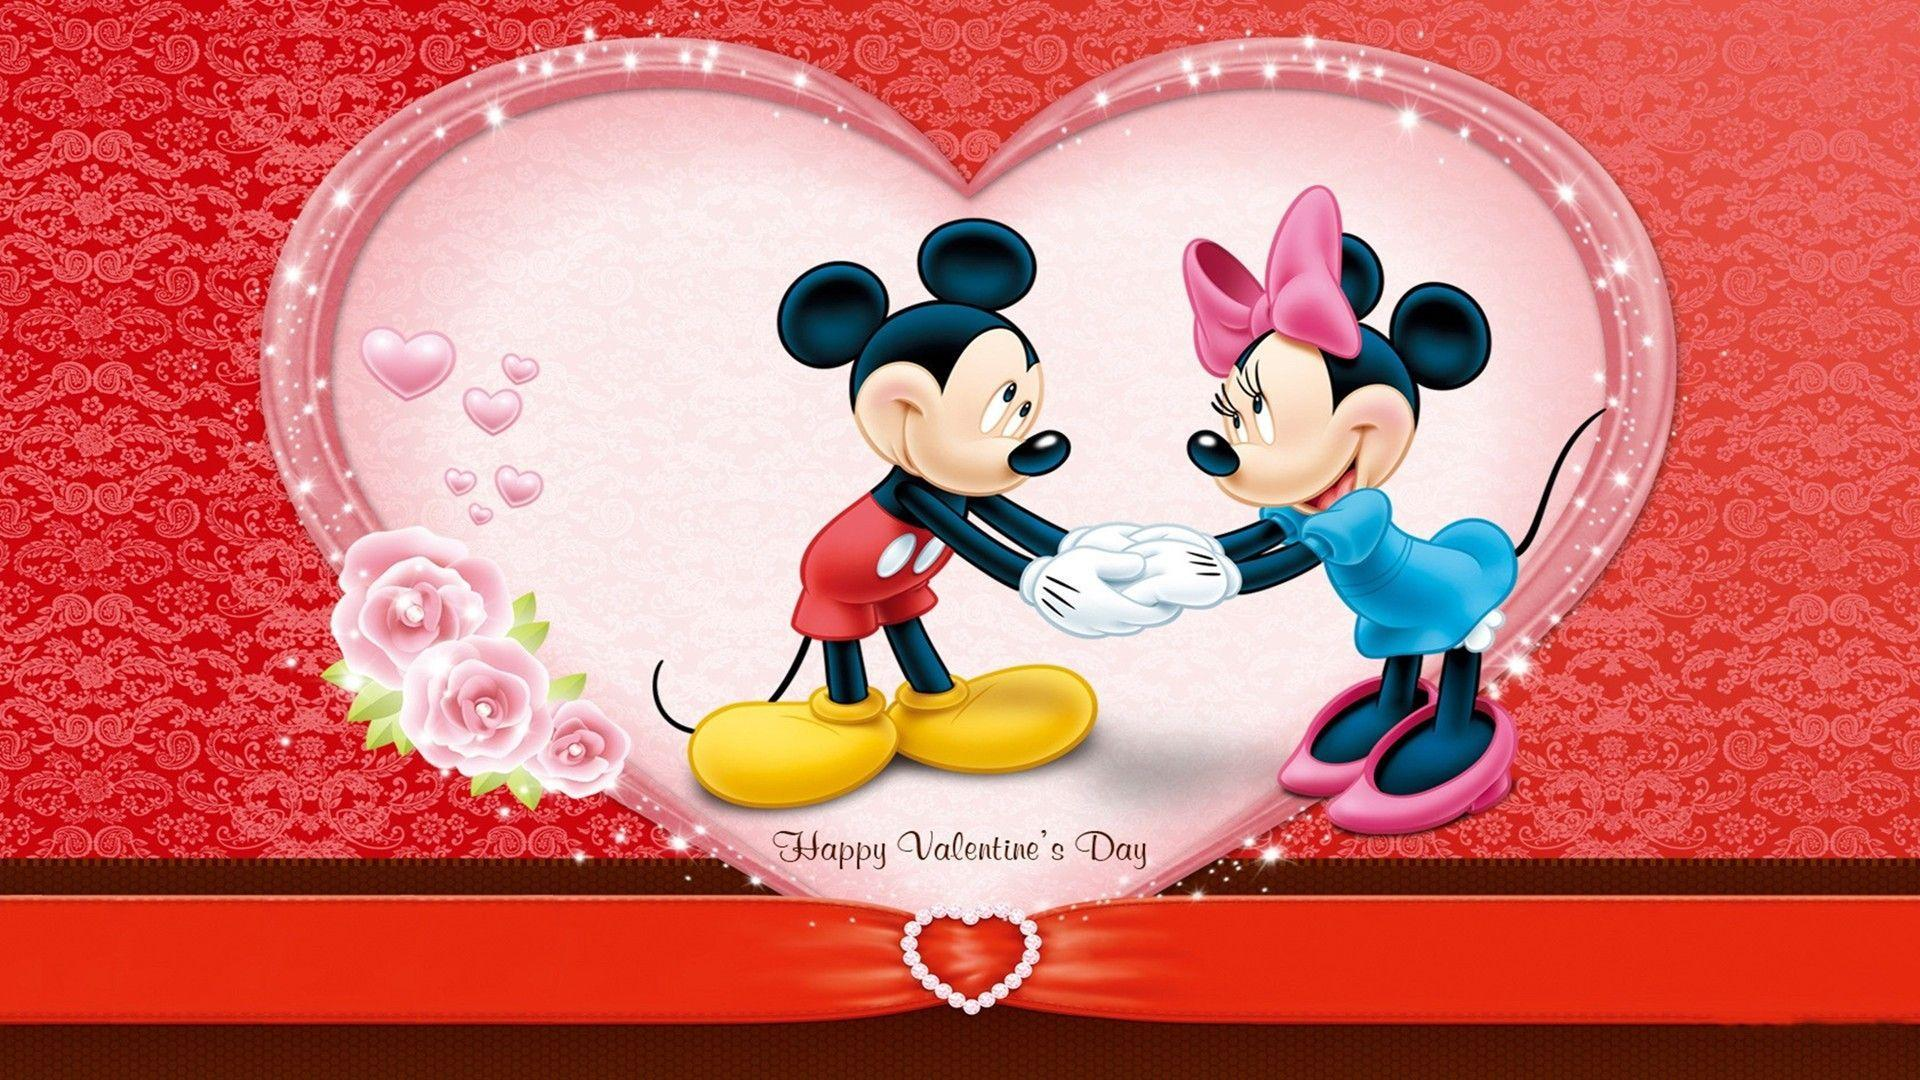 Cute Valentine's Day Wallpapers - Wallpaper Cave